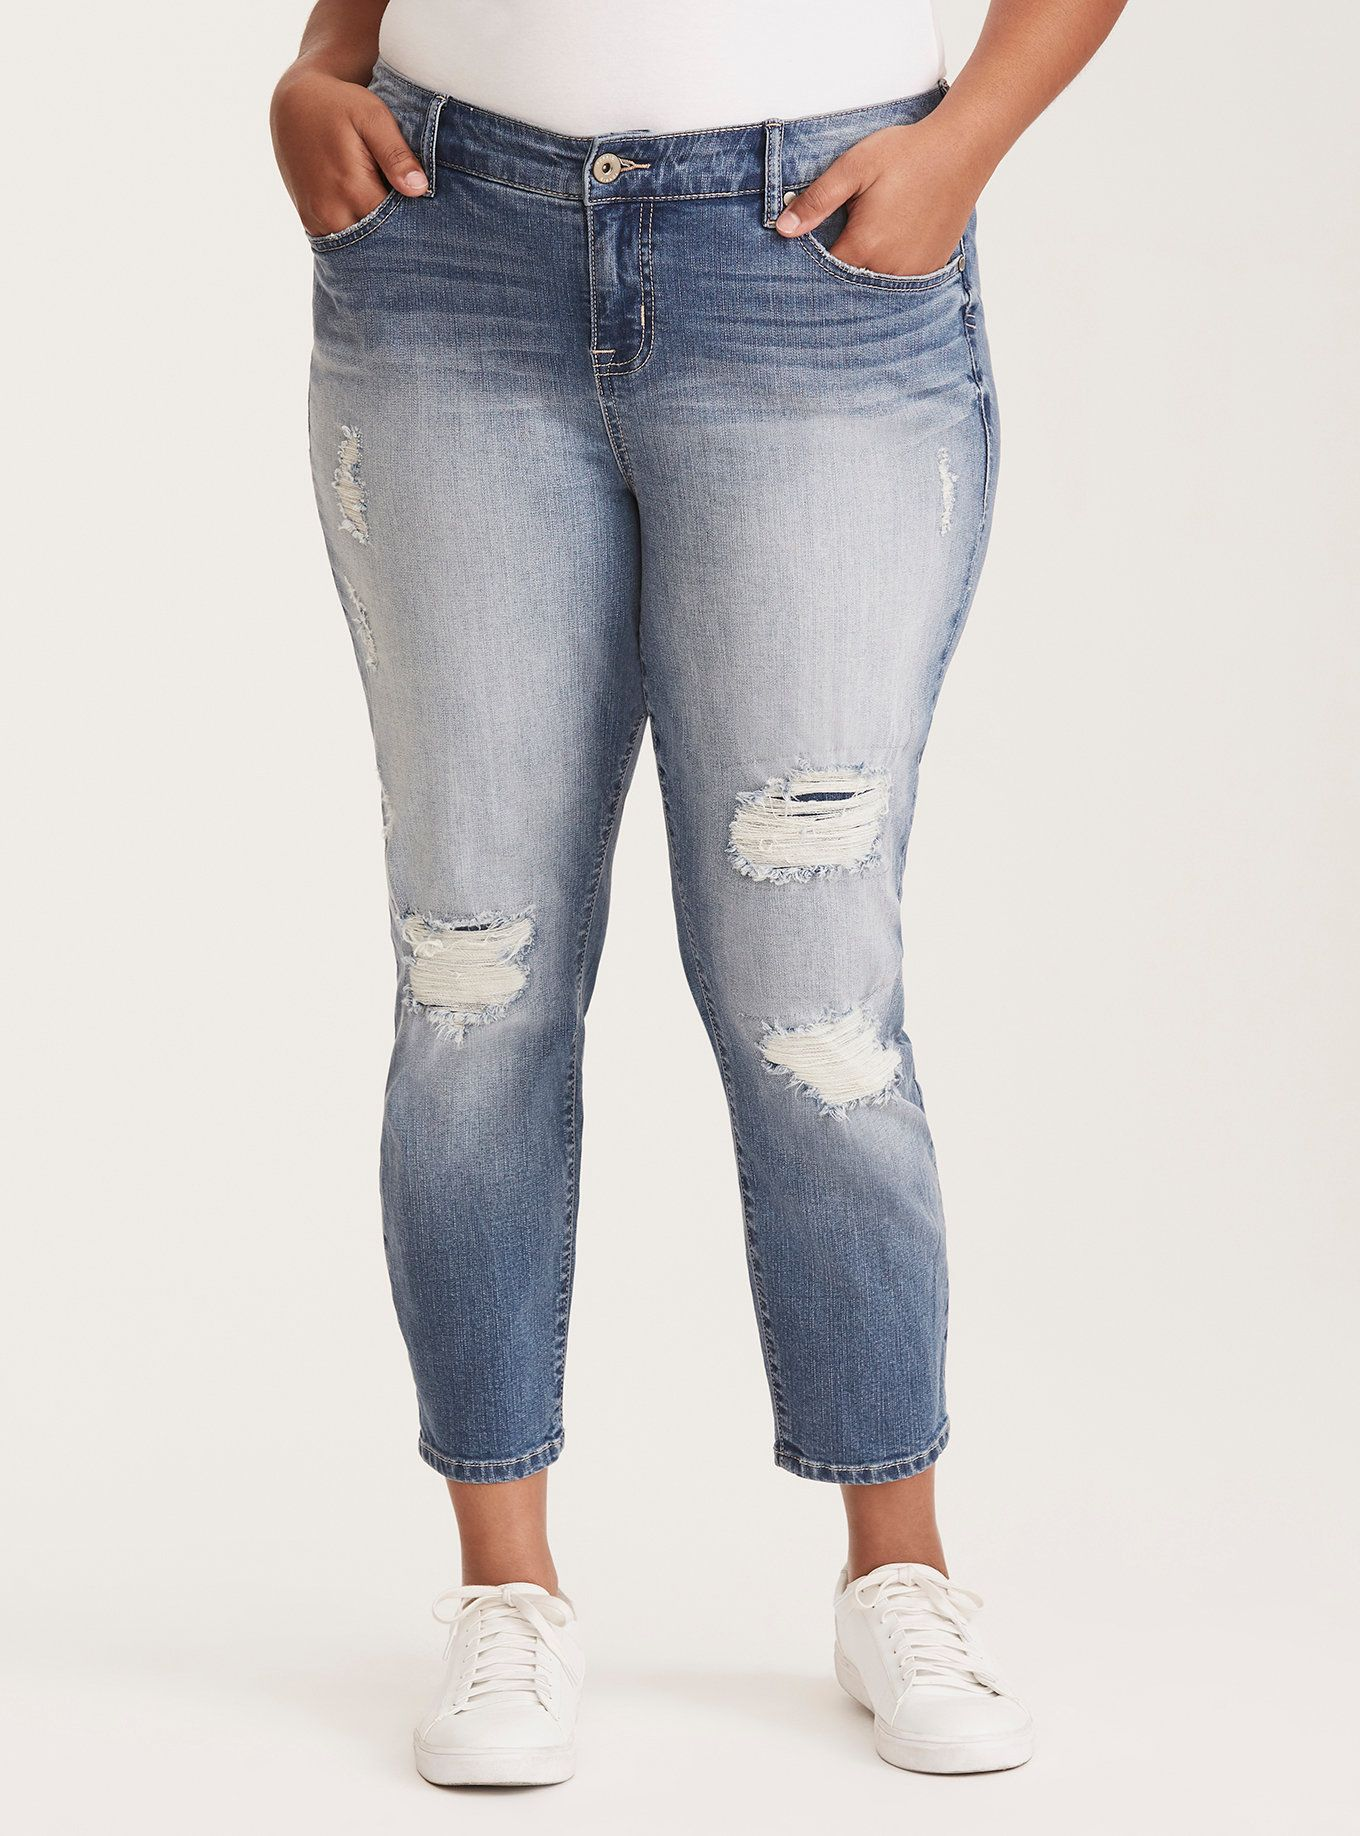 bd96e8c679d Plus Size Torrid Girlfriend Jeans - Light Wash with Ripped Destruction